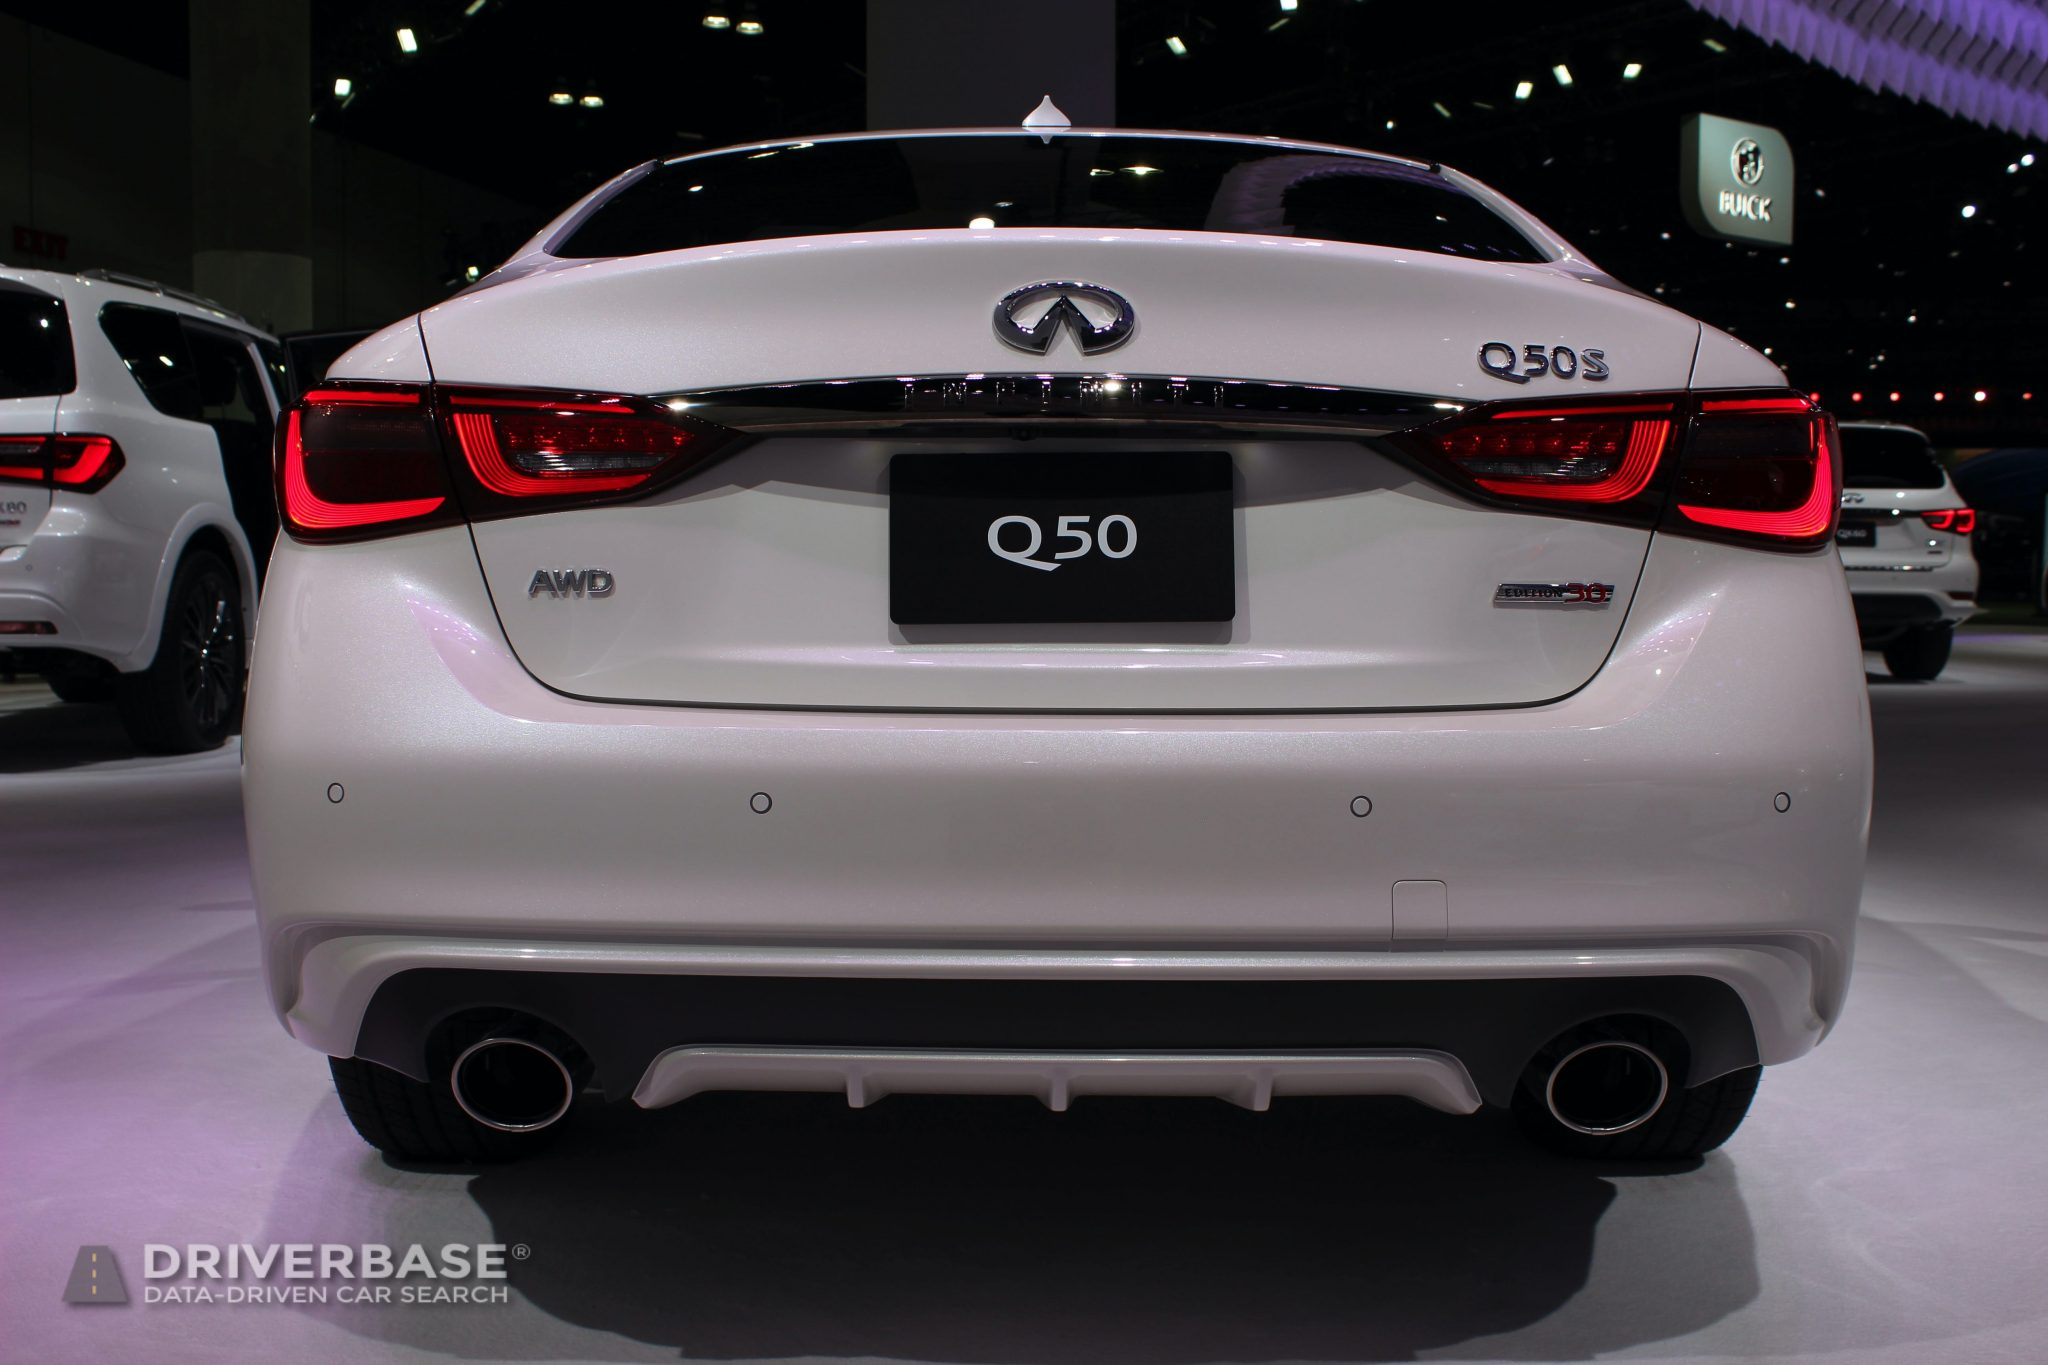 2020 Infiniti Q50S at the 2019 Los Angeles Auto Show